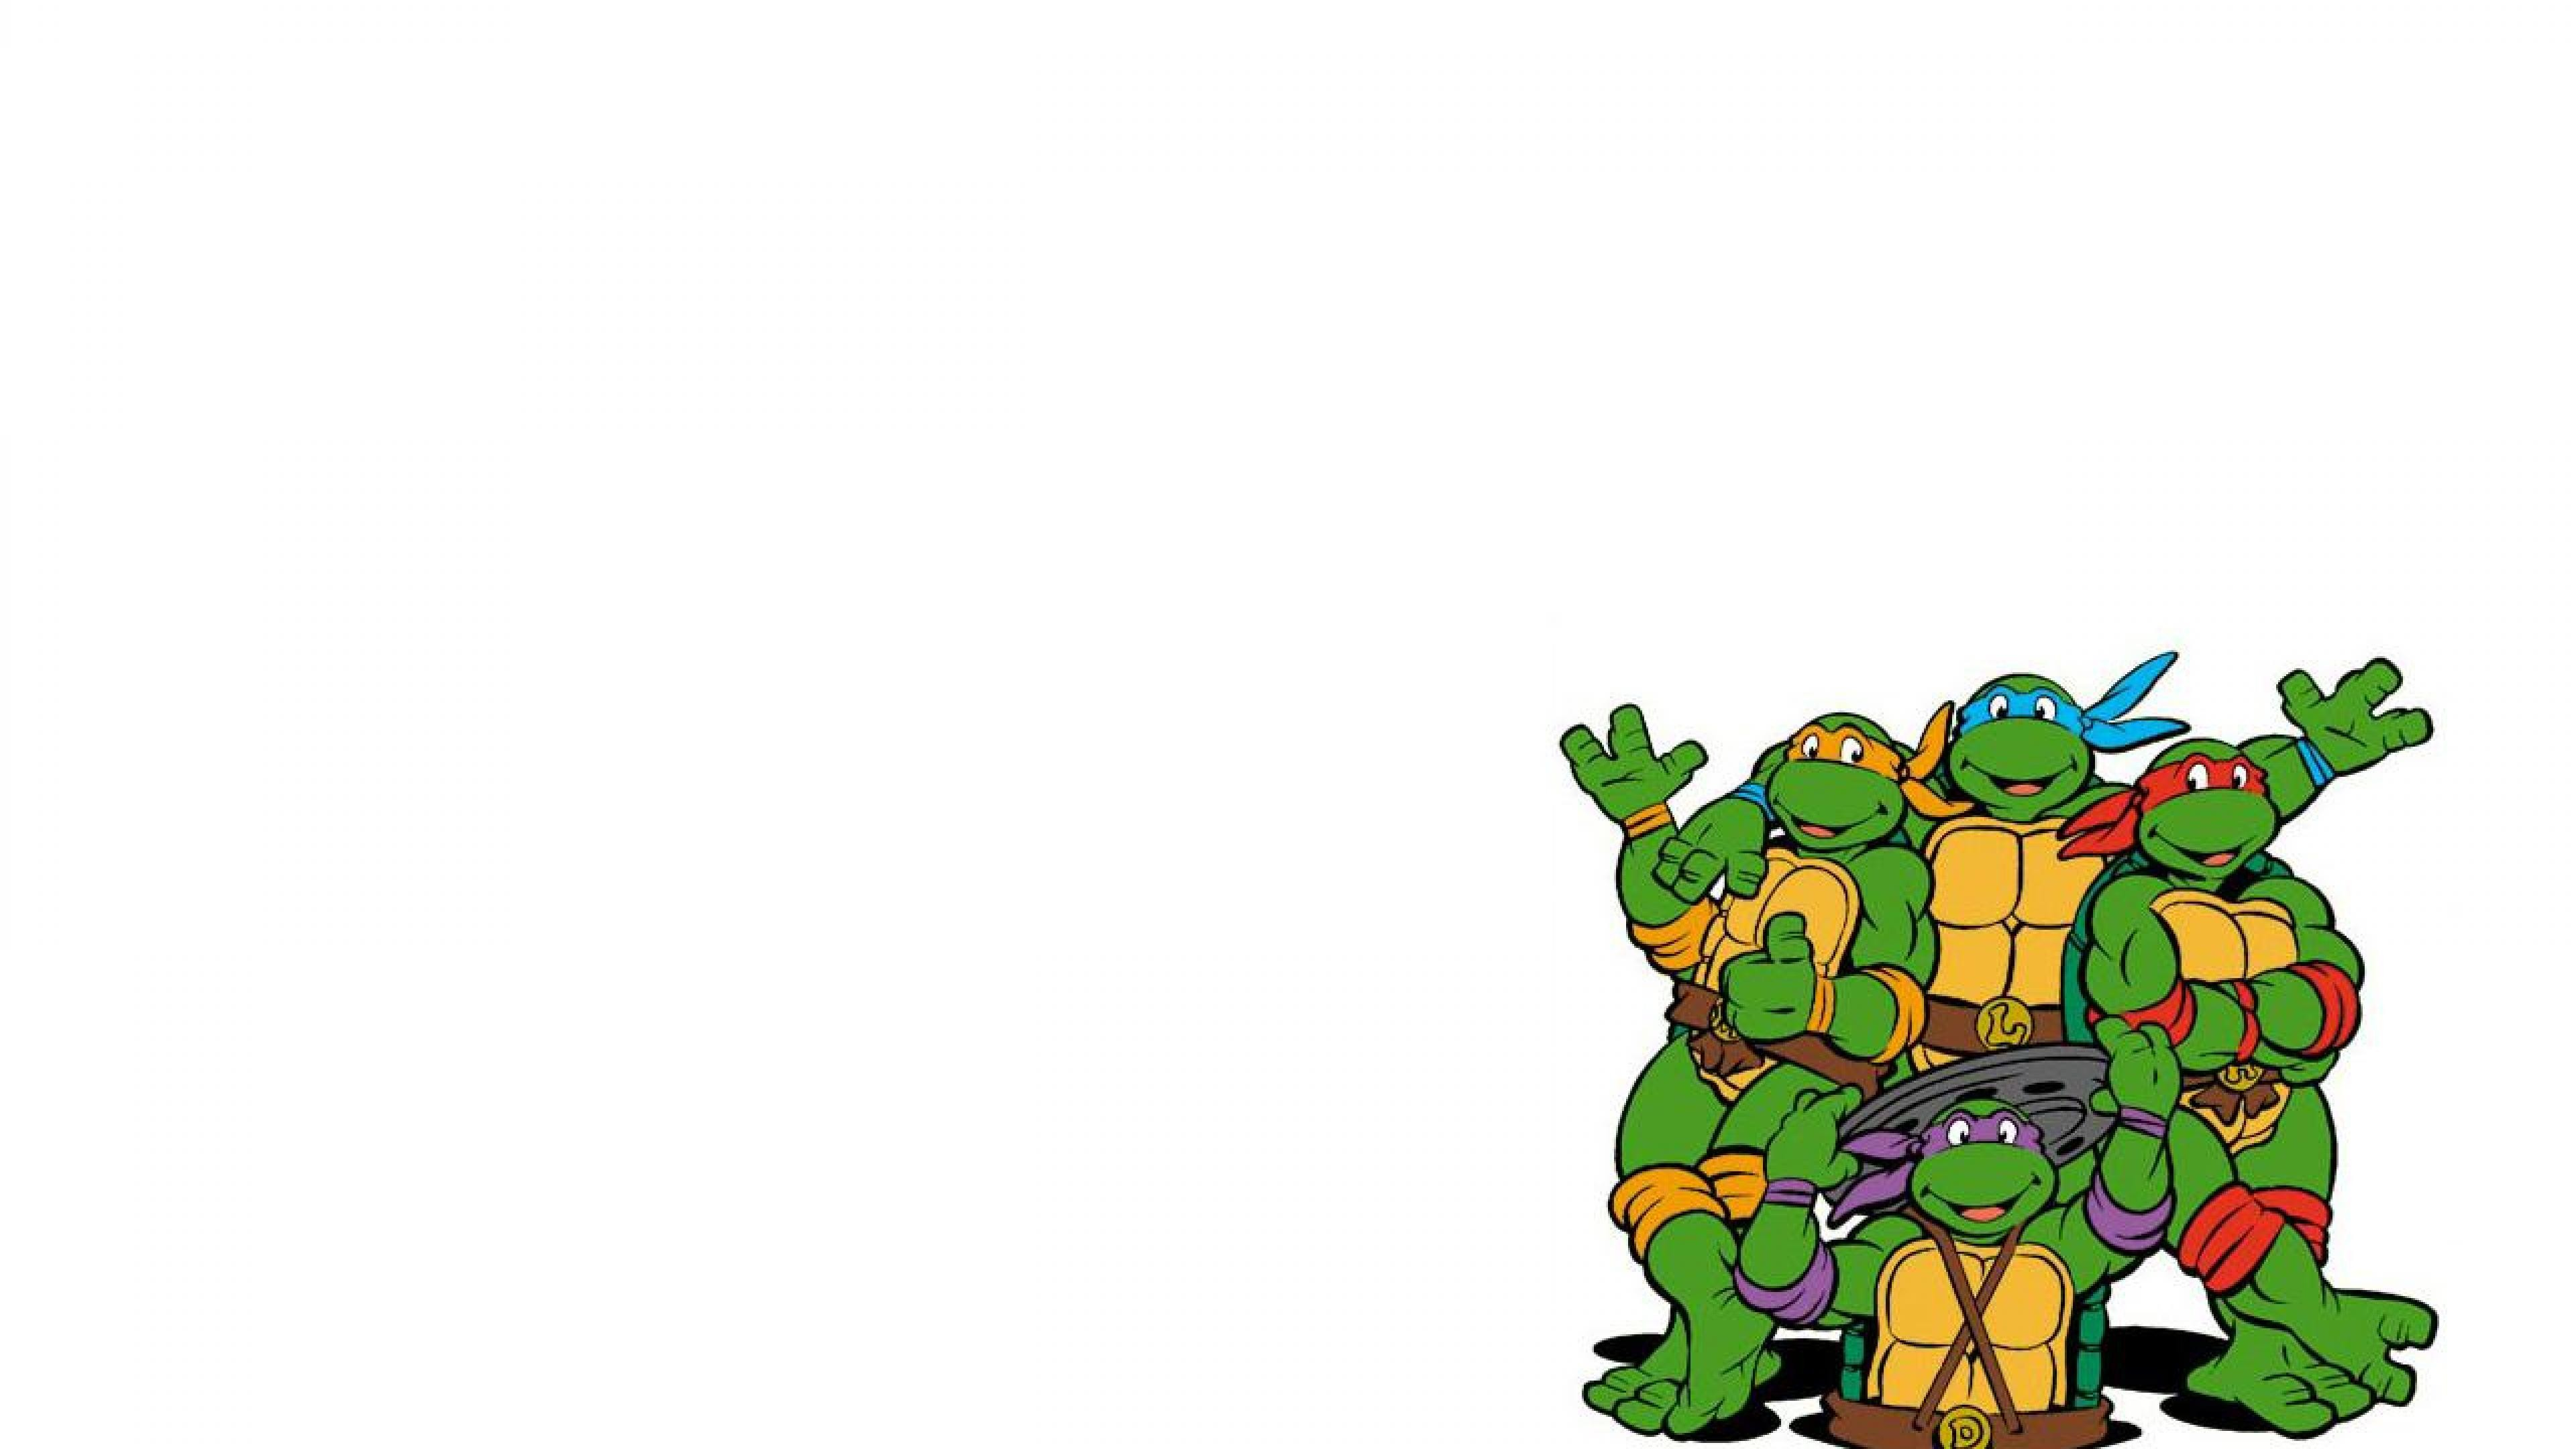 3840x2160 Tmnt Backgrounds Images)